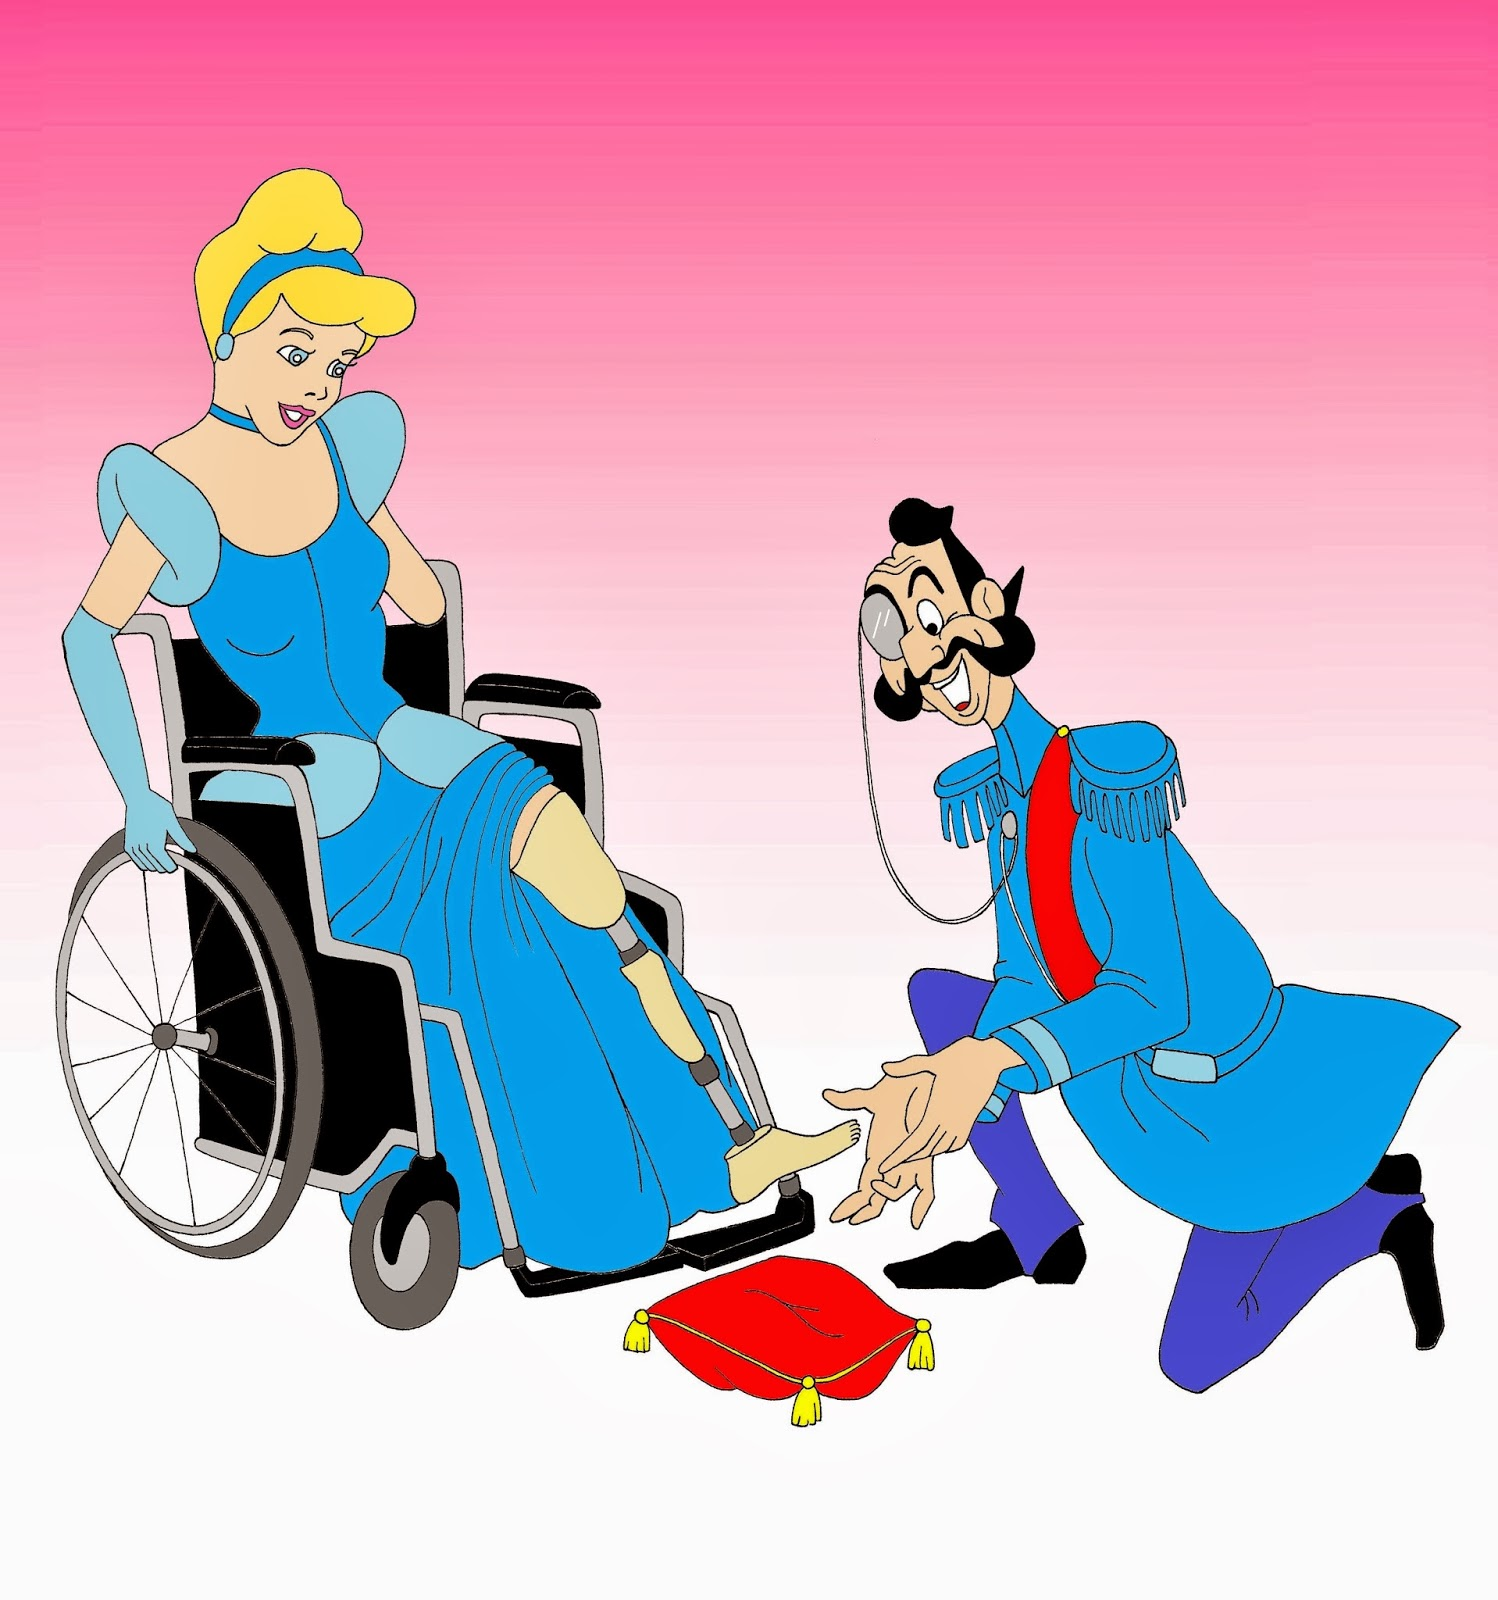 Gender Roles in Fairy Tales | Discover The Stereotypes Children are Taught Since Childhood